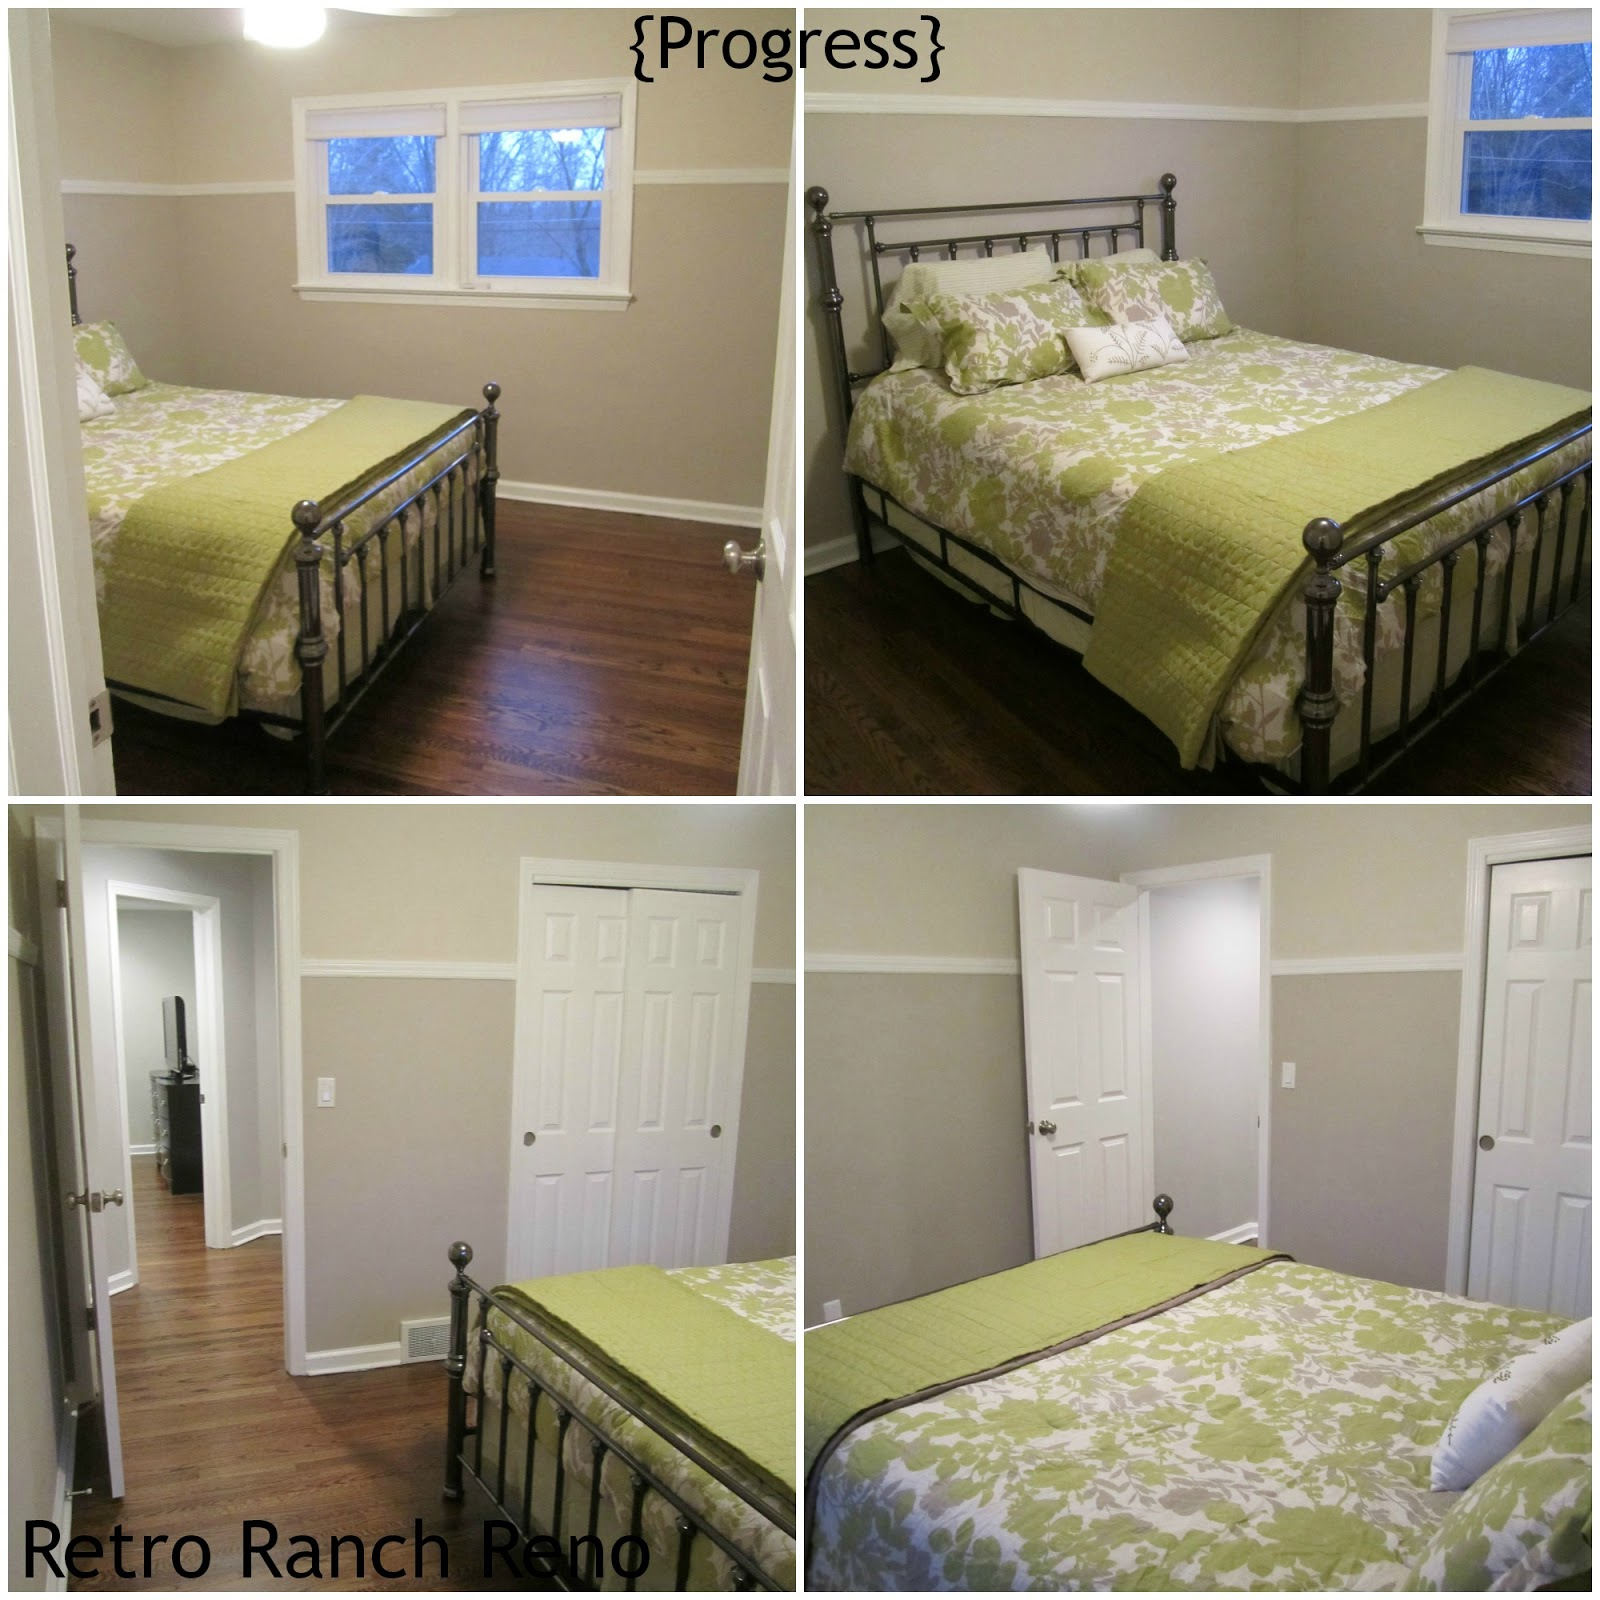 Retro Ranch Reno Our Rancher Before After: House Tour: House Snooping At Retro Ranch Reno